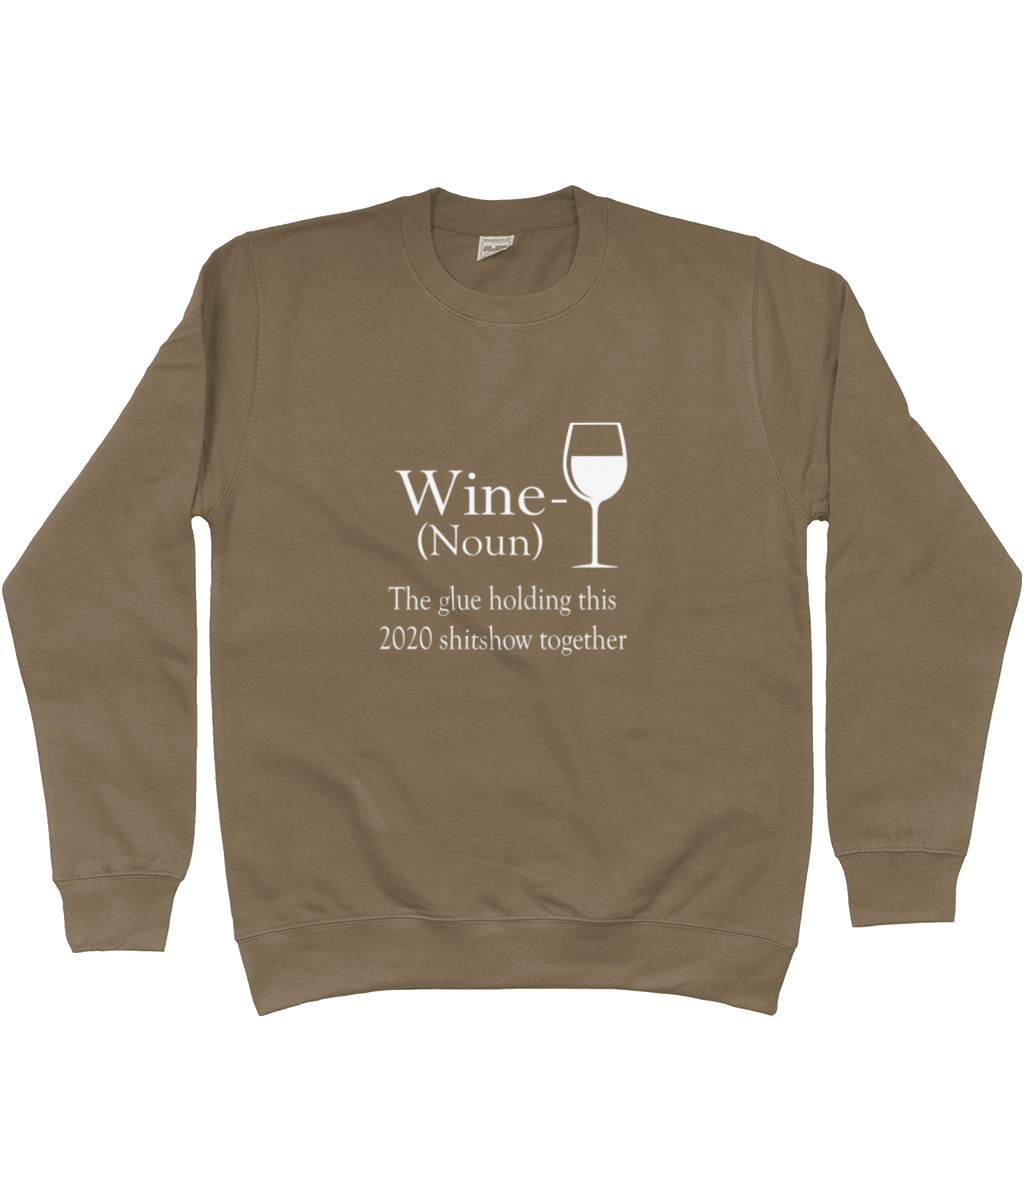 Wine The Glue Holding This 2020 Shitshow Together Quality Sweatshirt - Now Vintage for 2021!